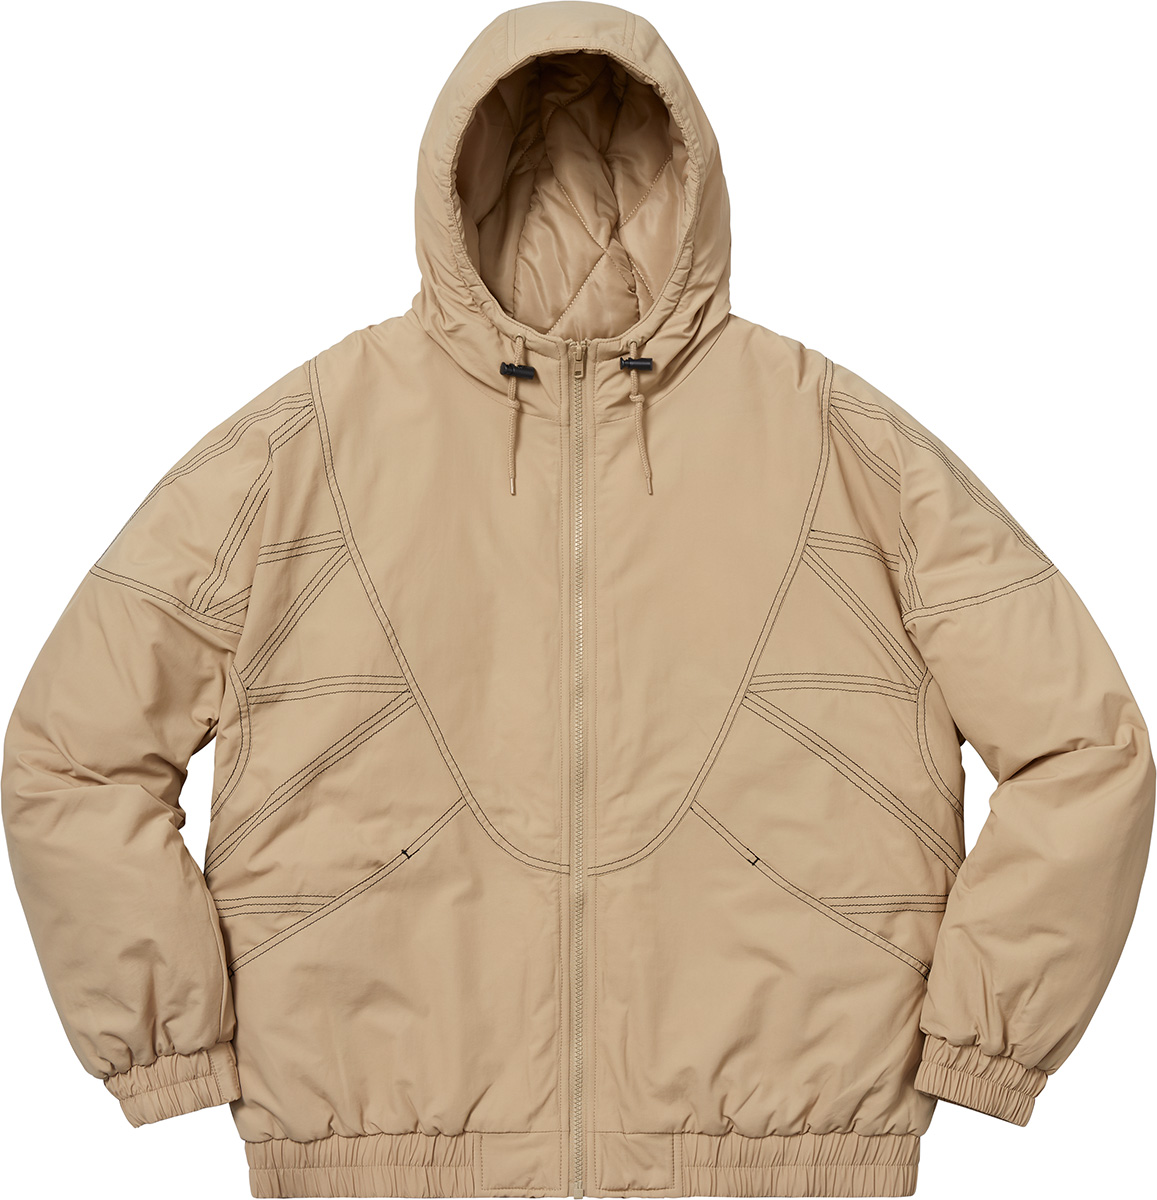 supreme-18aw-fall-winter-zig-zag-stitch-puffy-jacket